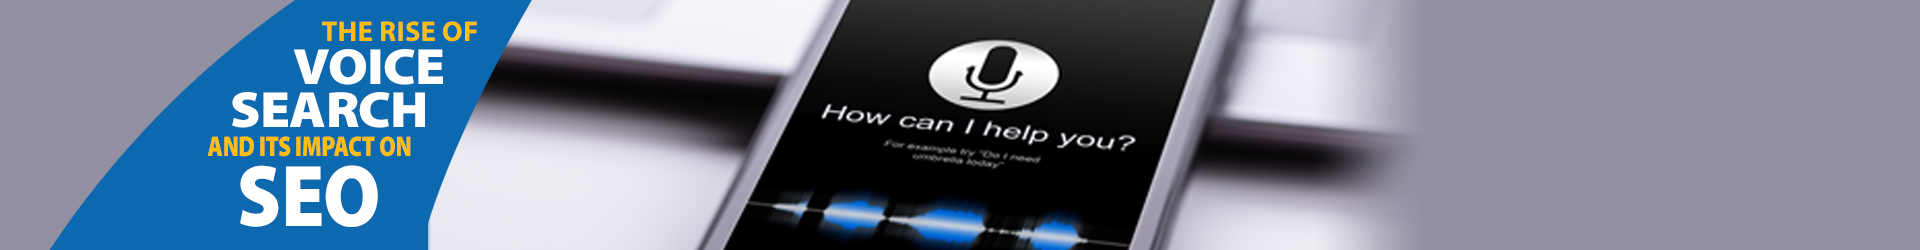 The Rise of Voice Search and its Impact on SEO